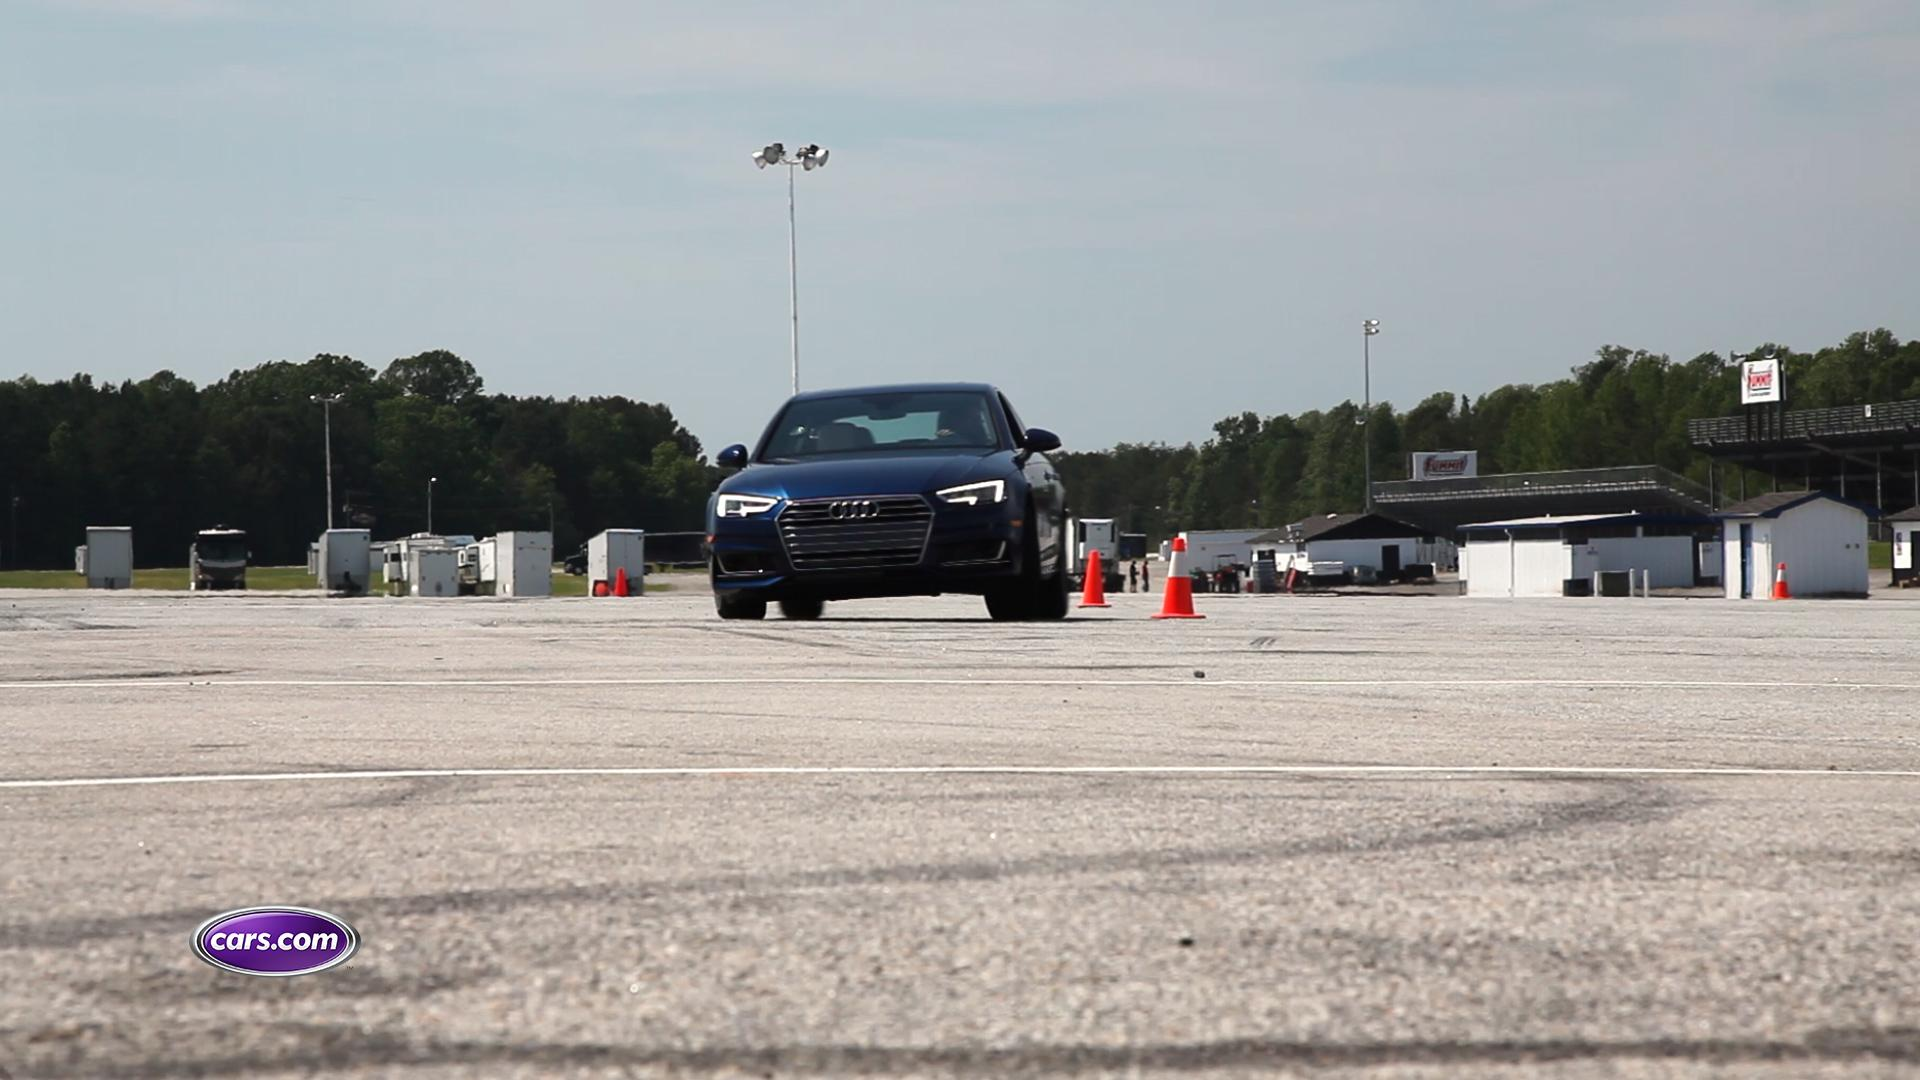 Luxury Sports Sedan Challenge Video: Handling